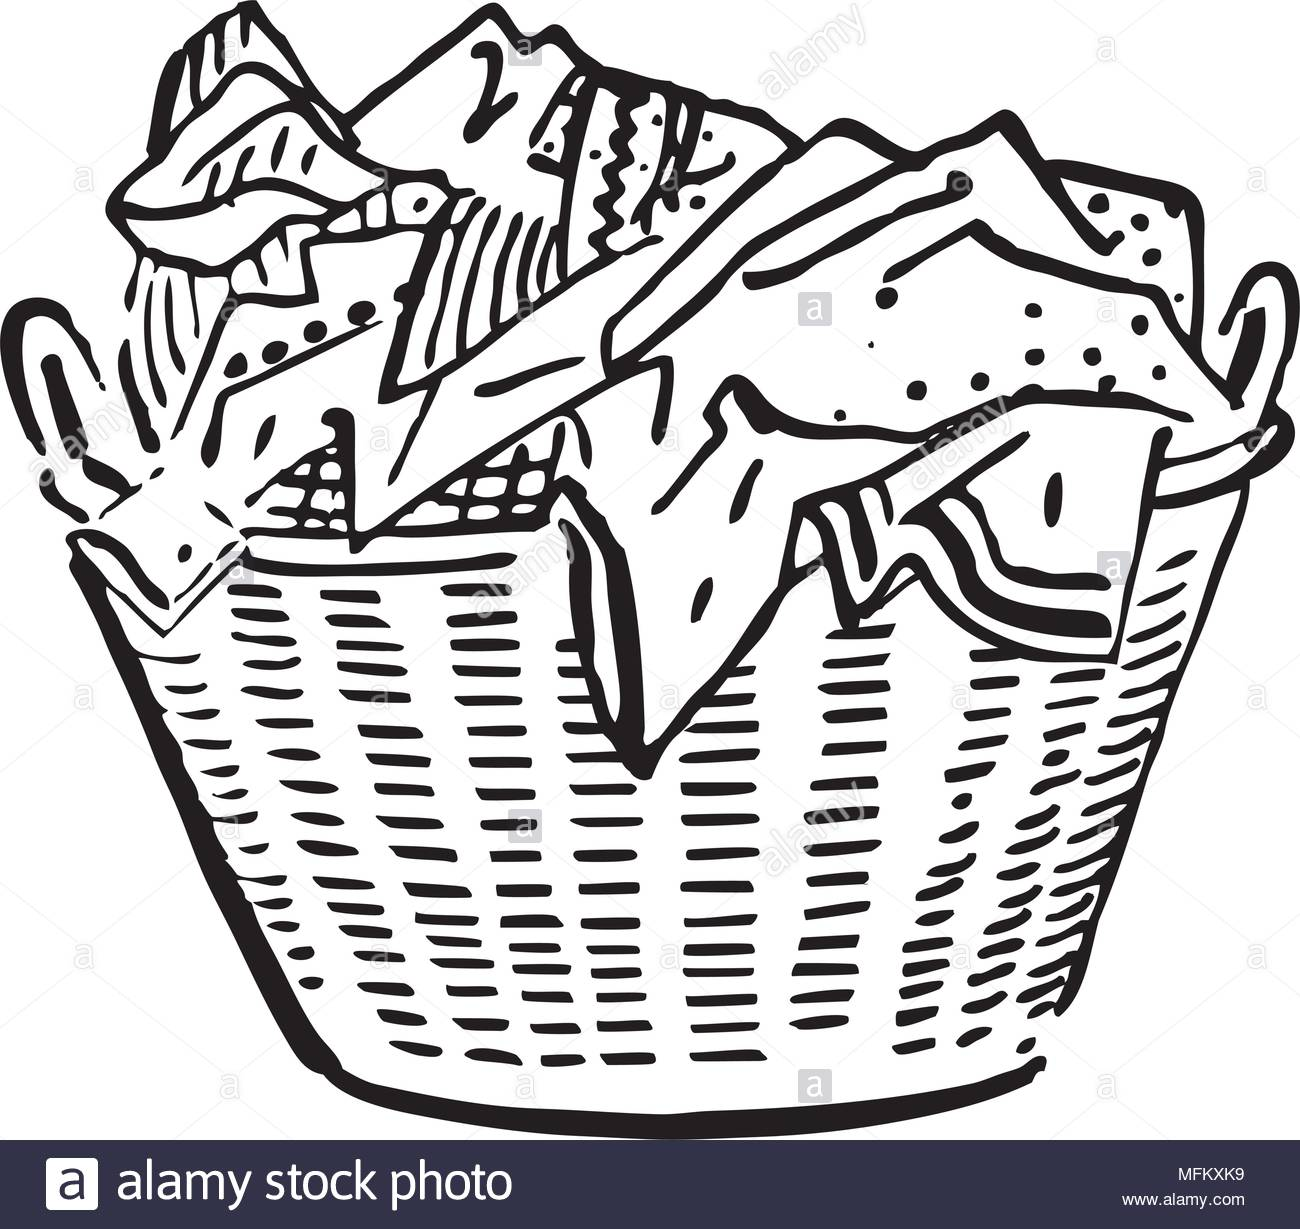 Clip Art Laundry 20 Free Cliparts Download Images On